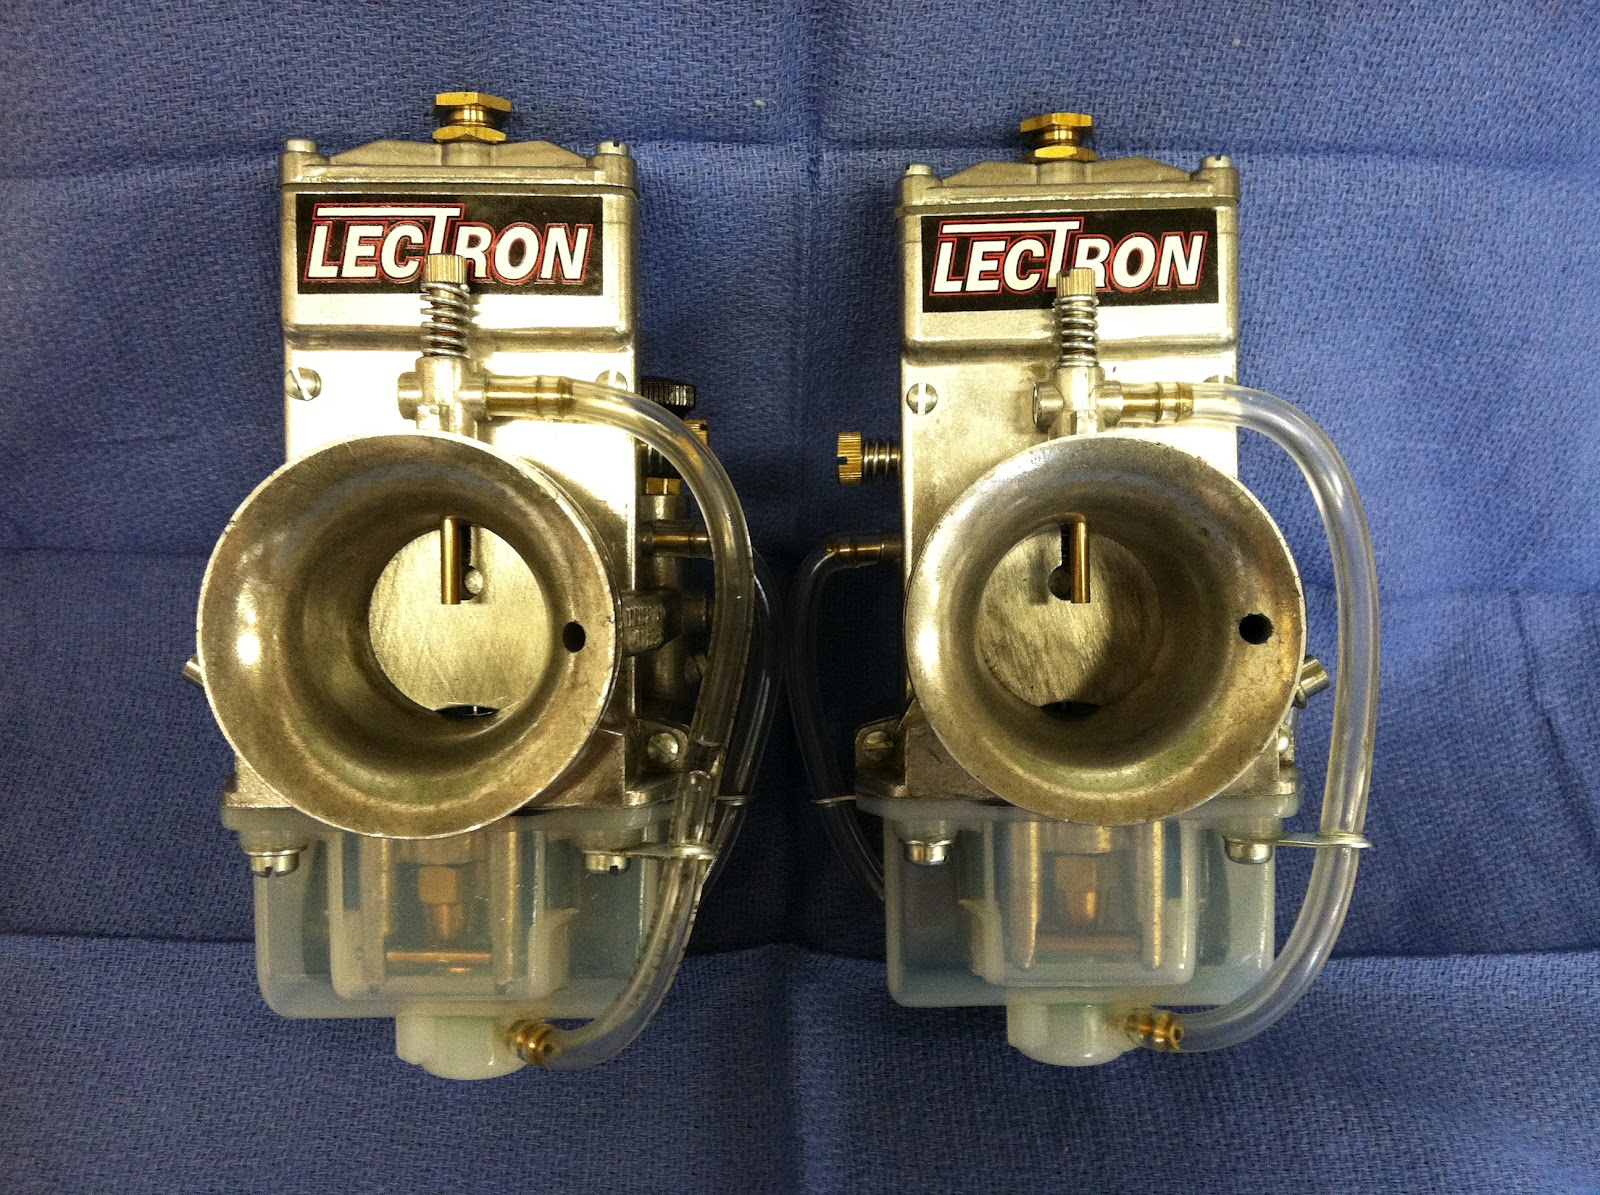 Motos Varias - Lectron Carburetors 2zgg1me